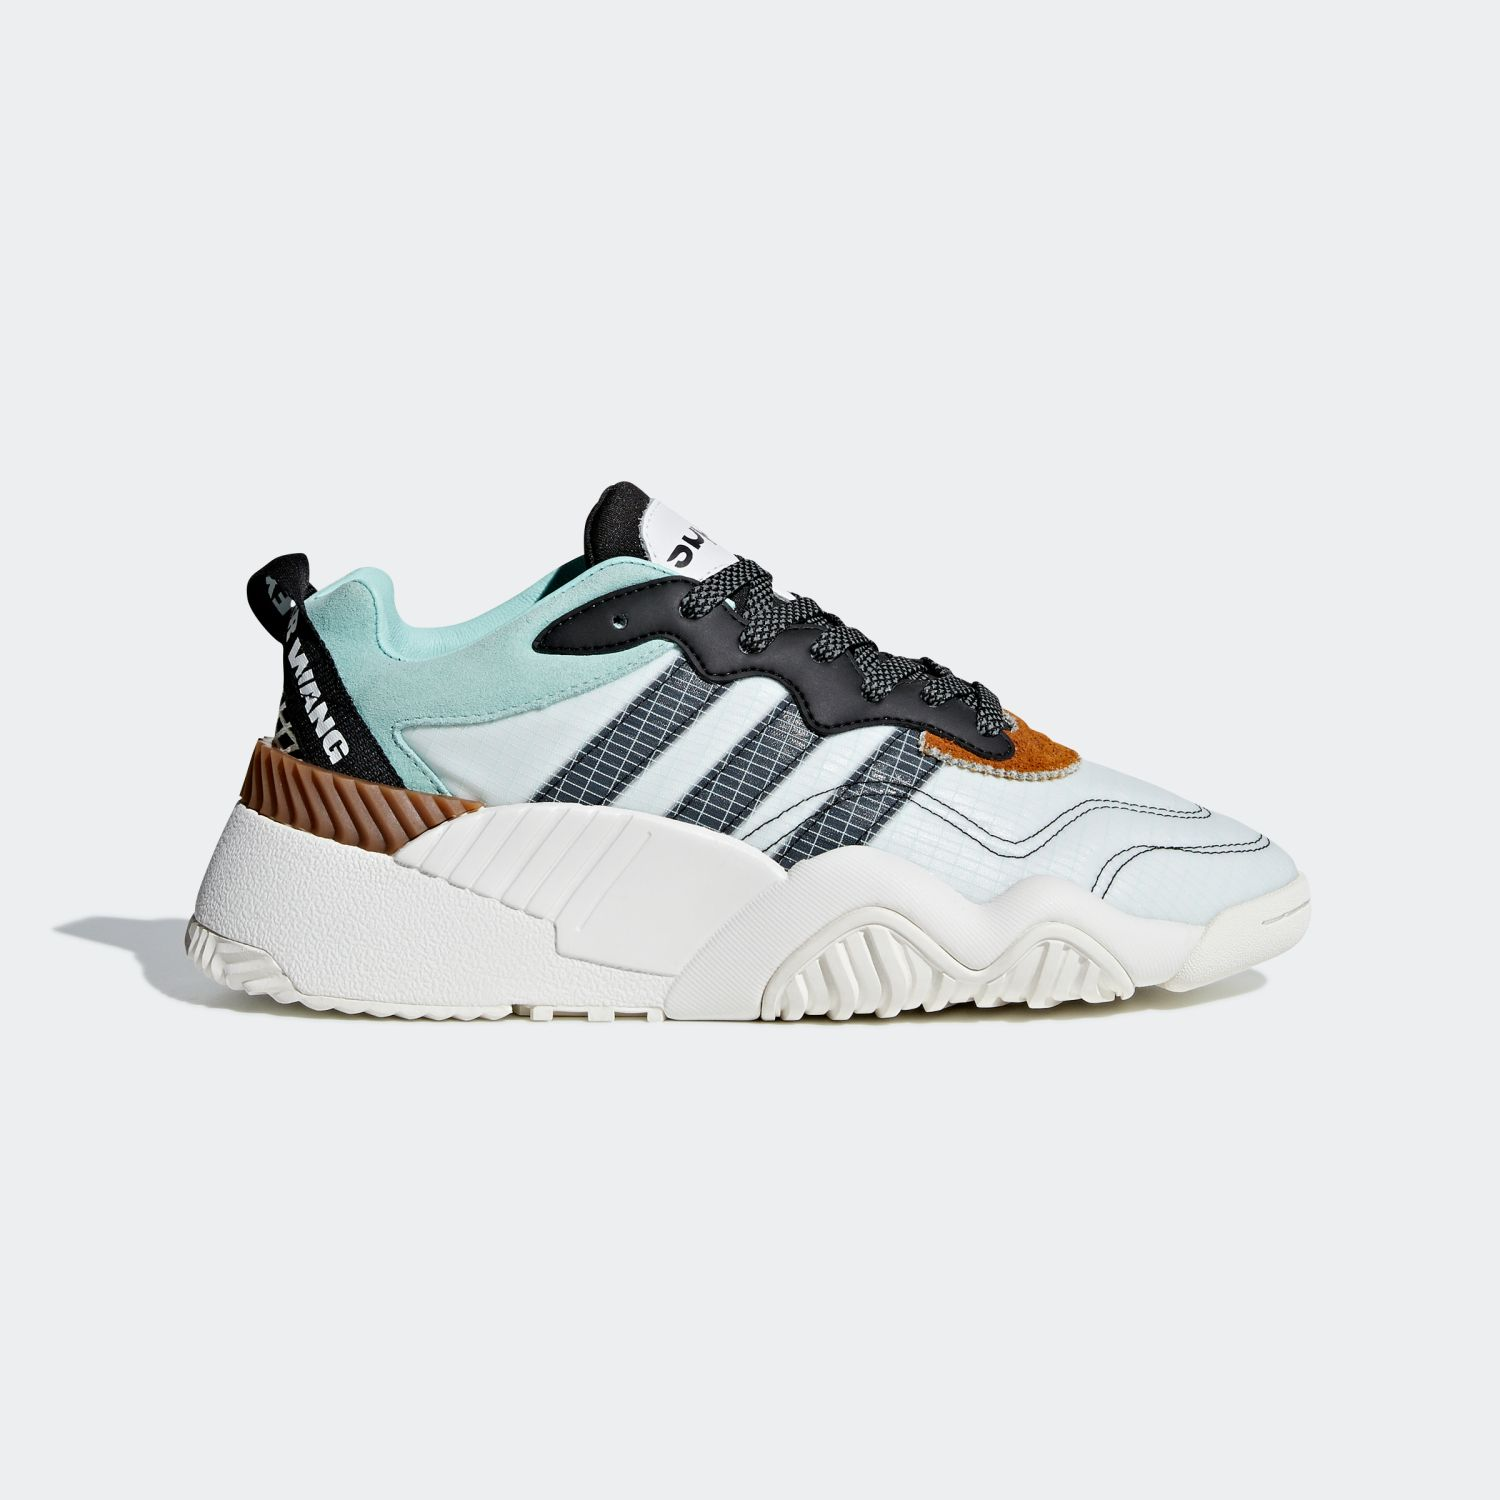 AW Turnout Trainer Alexander Wang Clear Mint Core Black